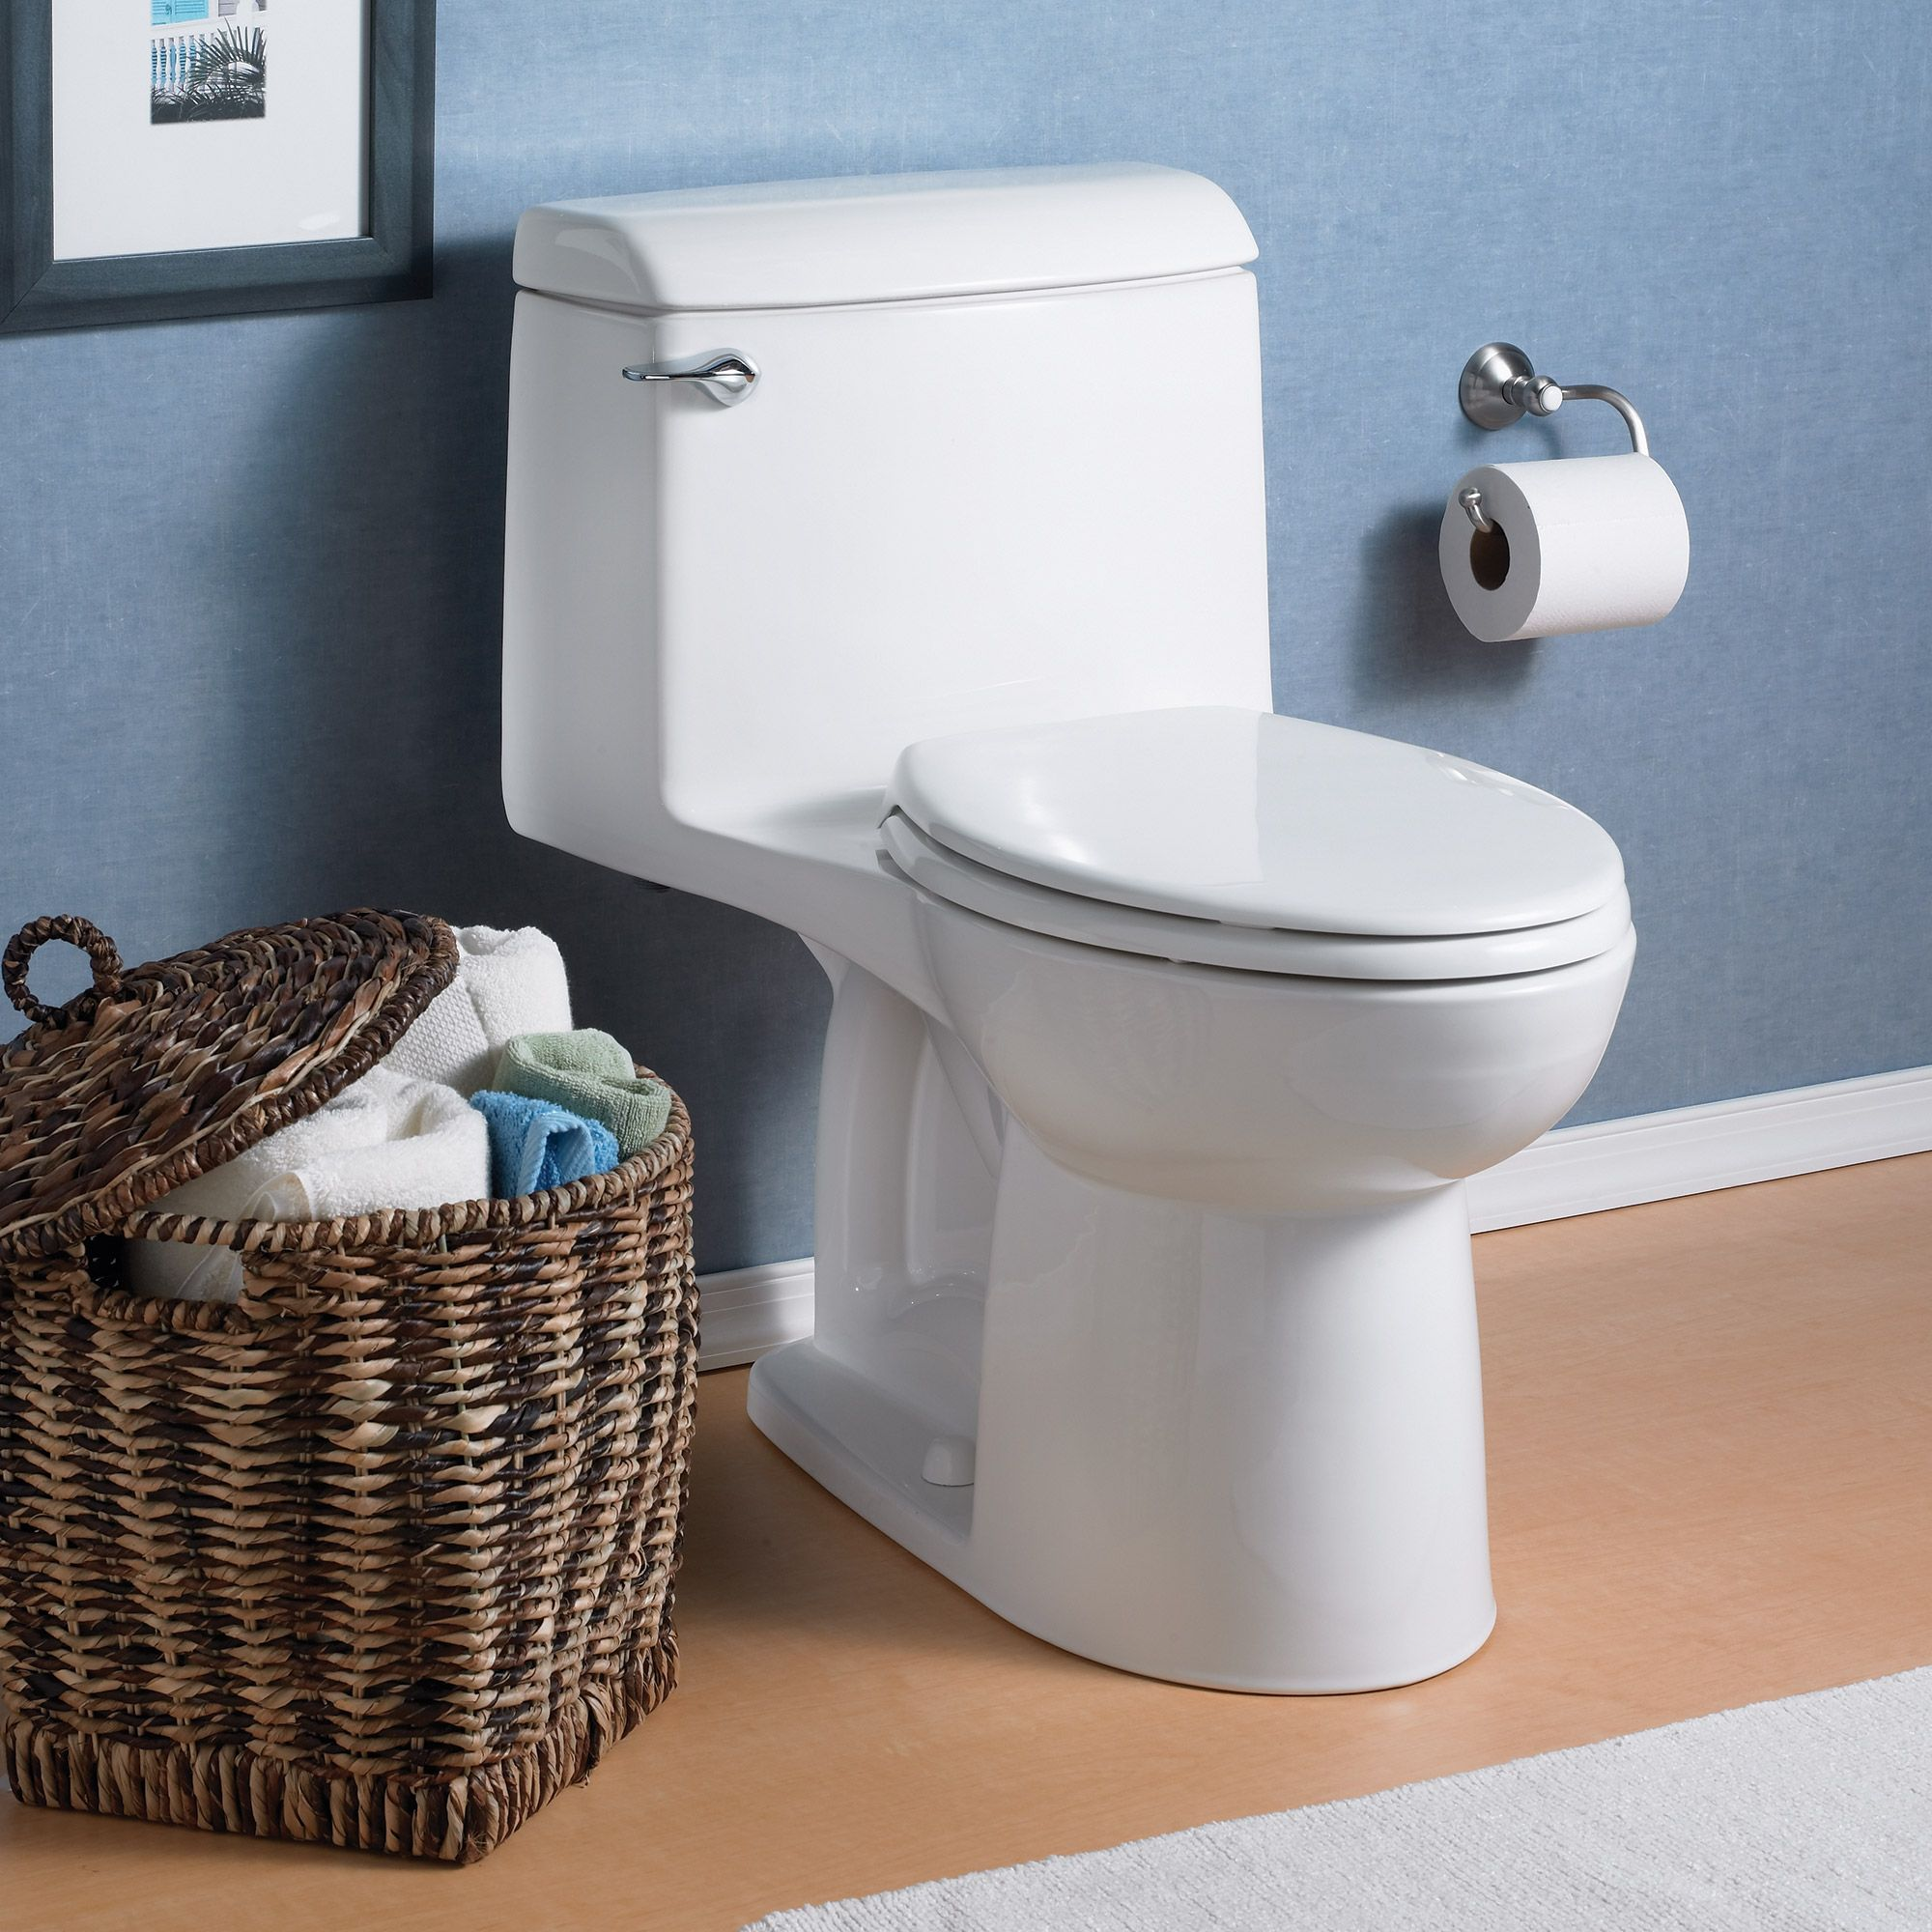 Champion 4 Elongated One Piece Toilet With Seat American Standard With Images One Piece Toilets How To Unclog Toilet